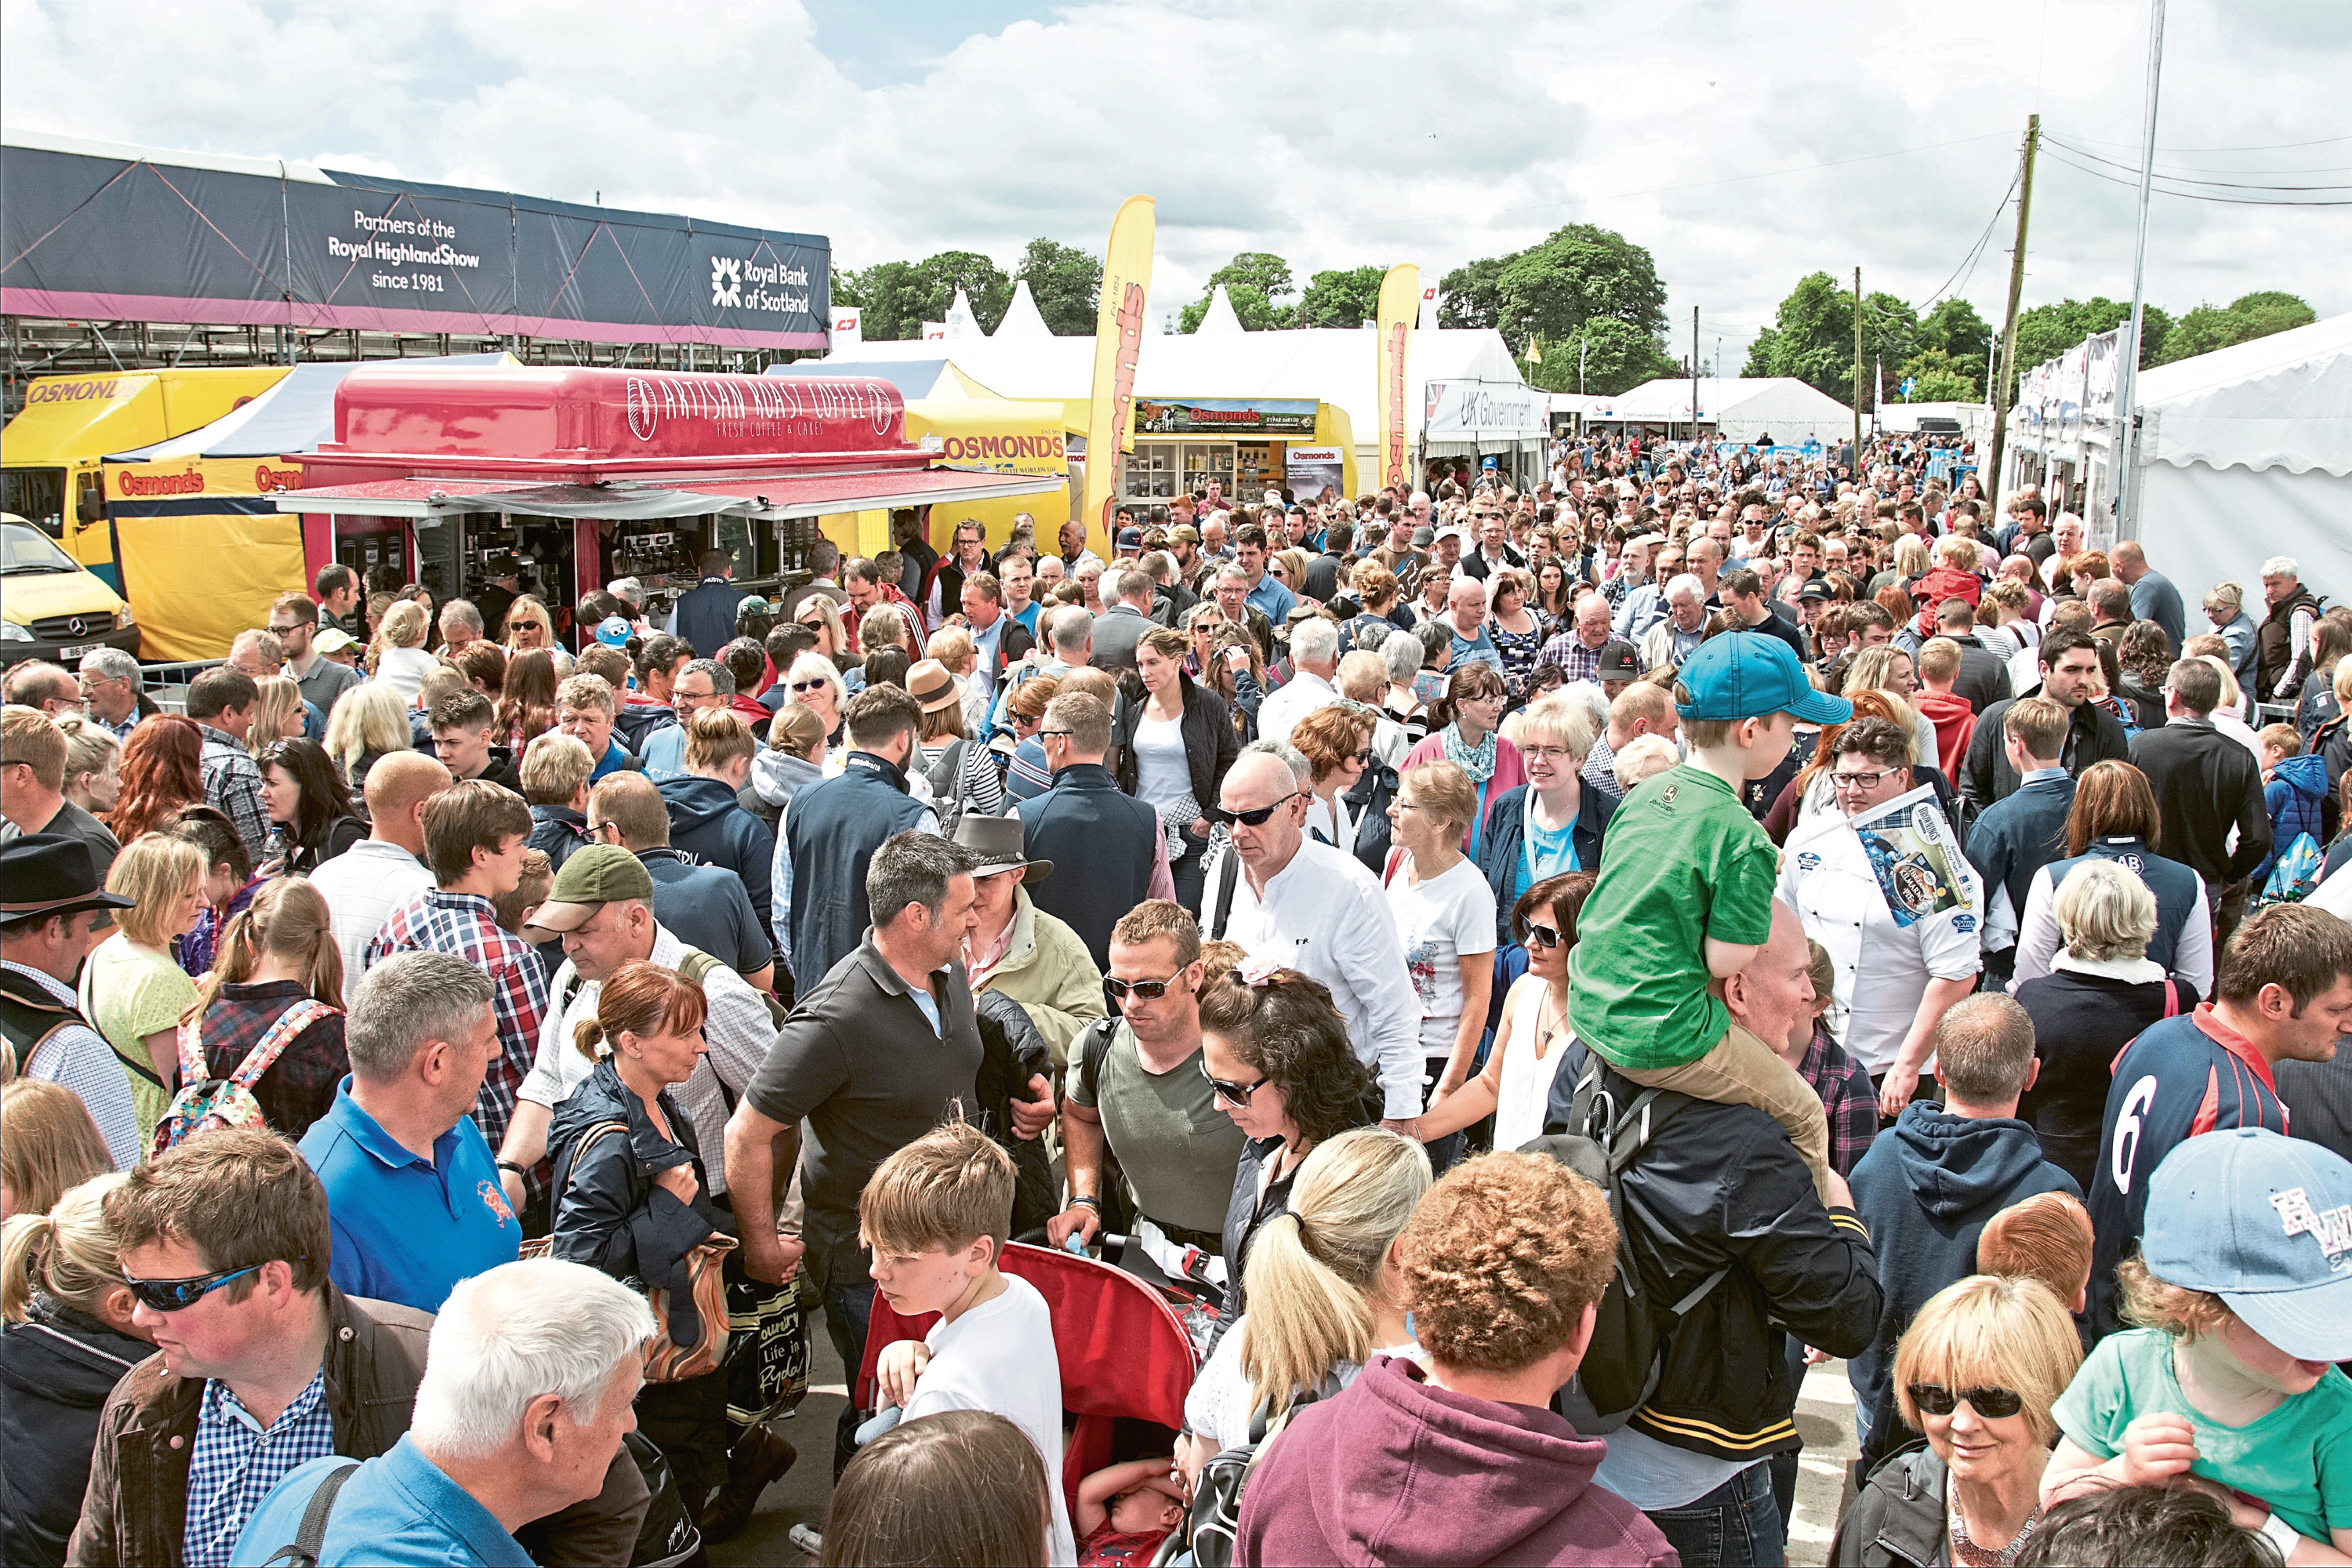 Saturday entry to the show could be restricted in future.